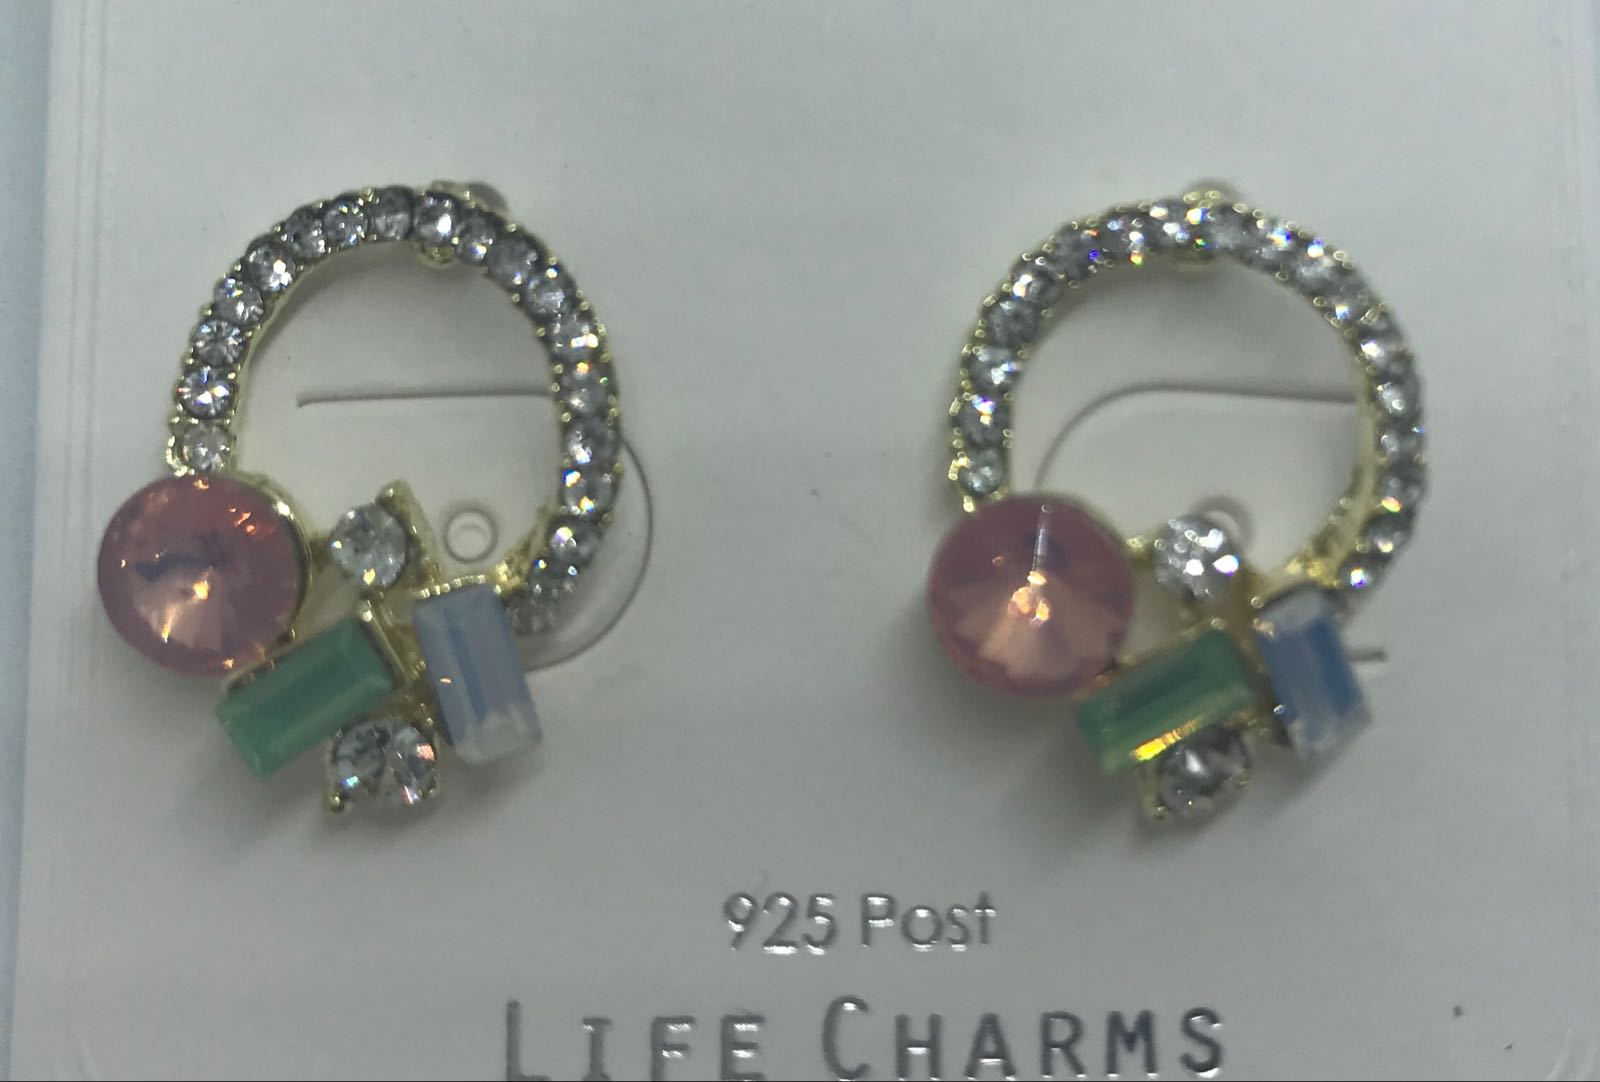 Life Charms collection of gems on circle stud earrings